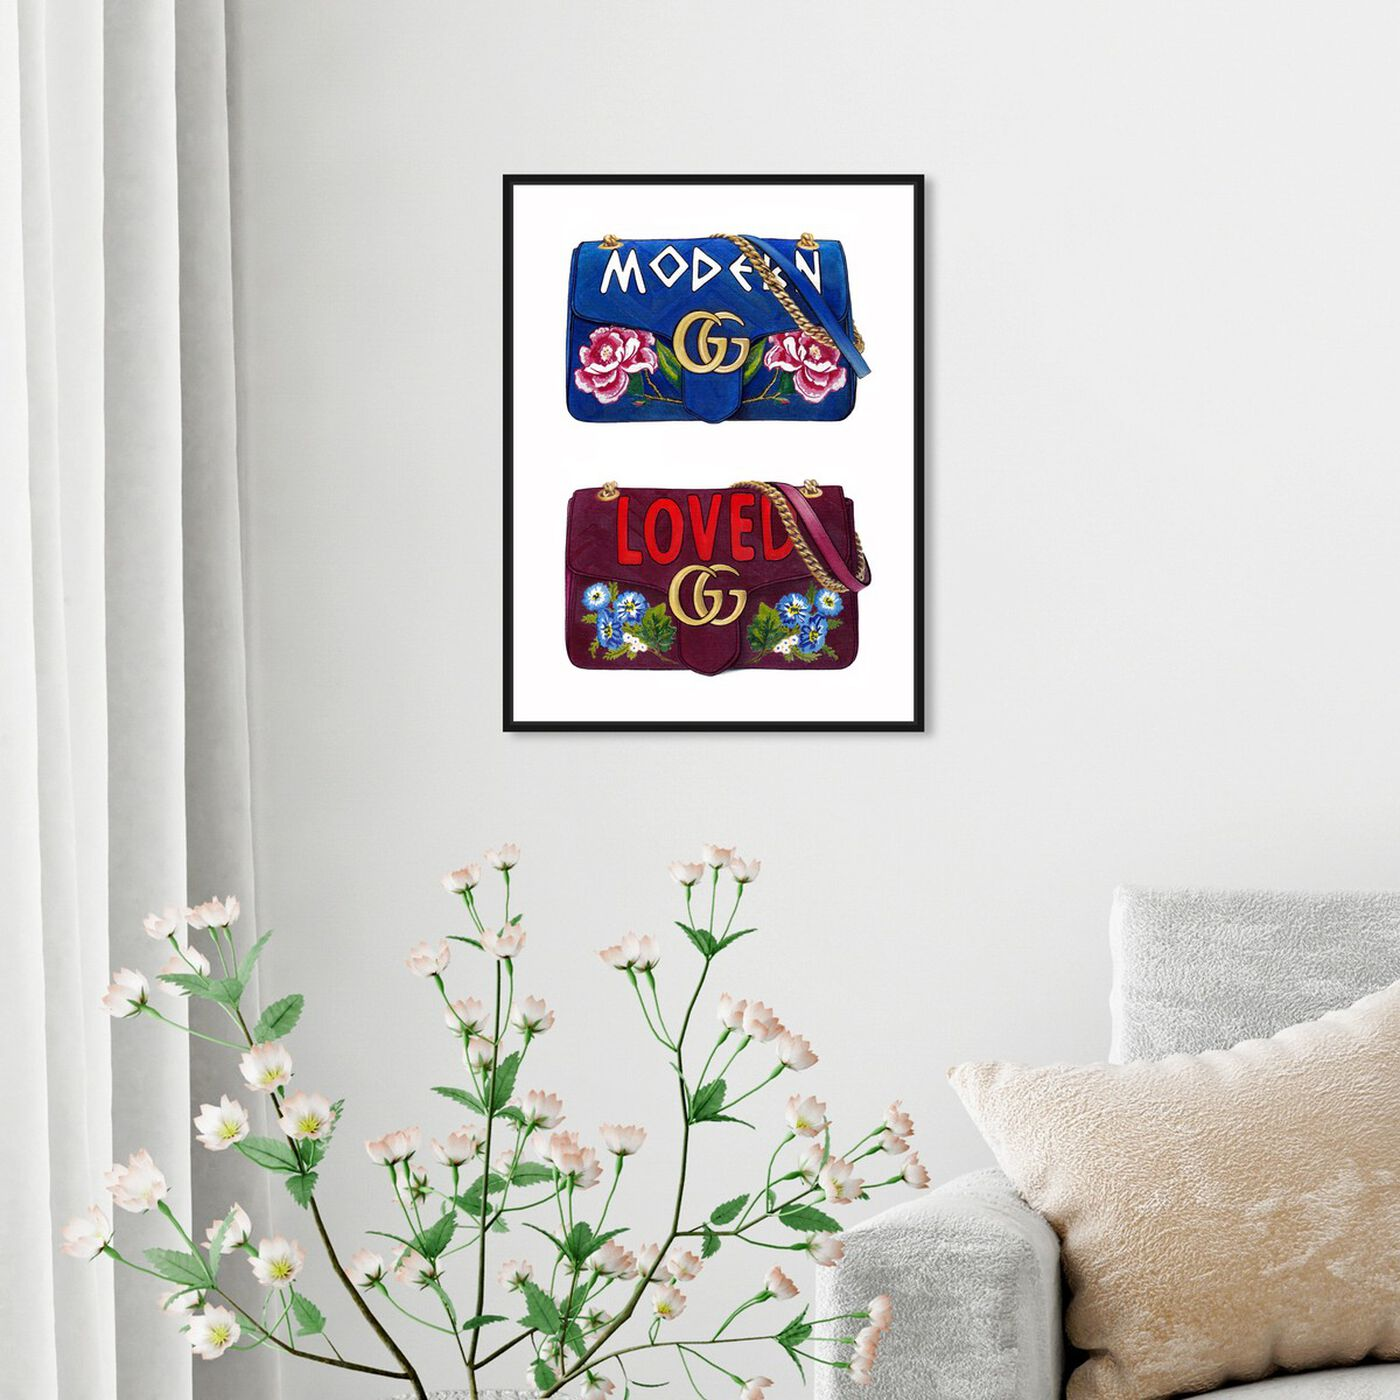 Hanging view of Doll Memories - Lover featuring fashion and glam and handbags art.